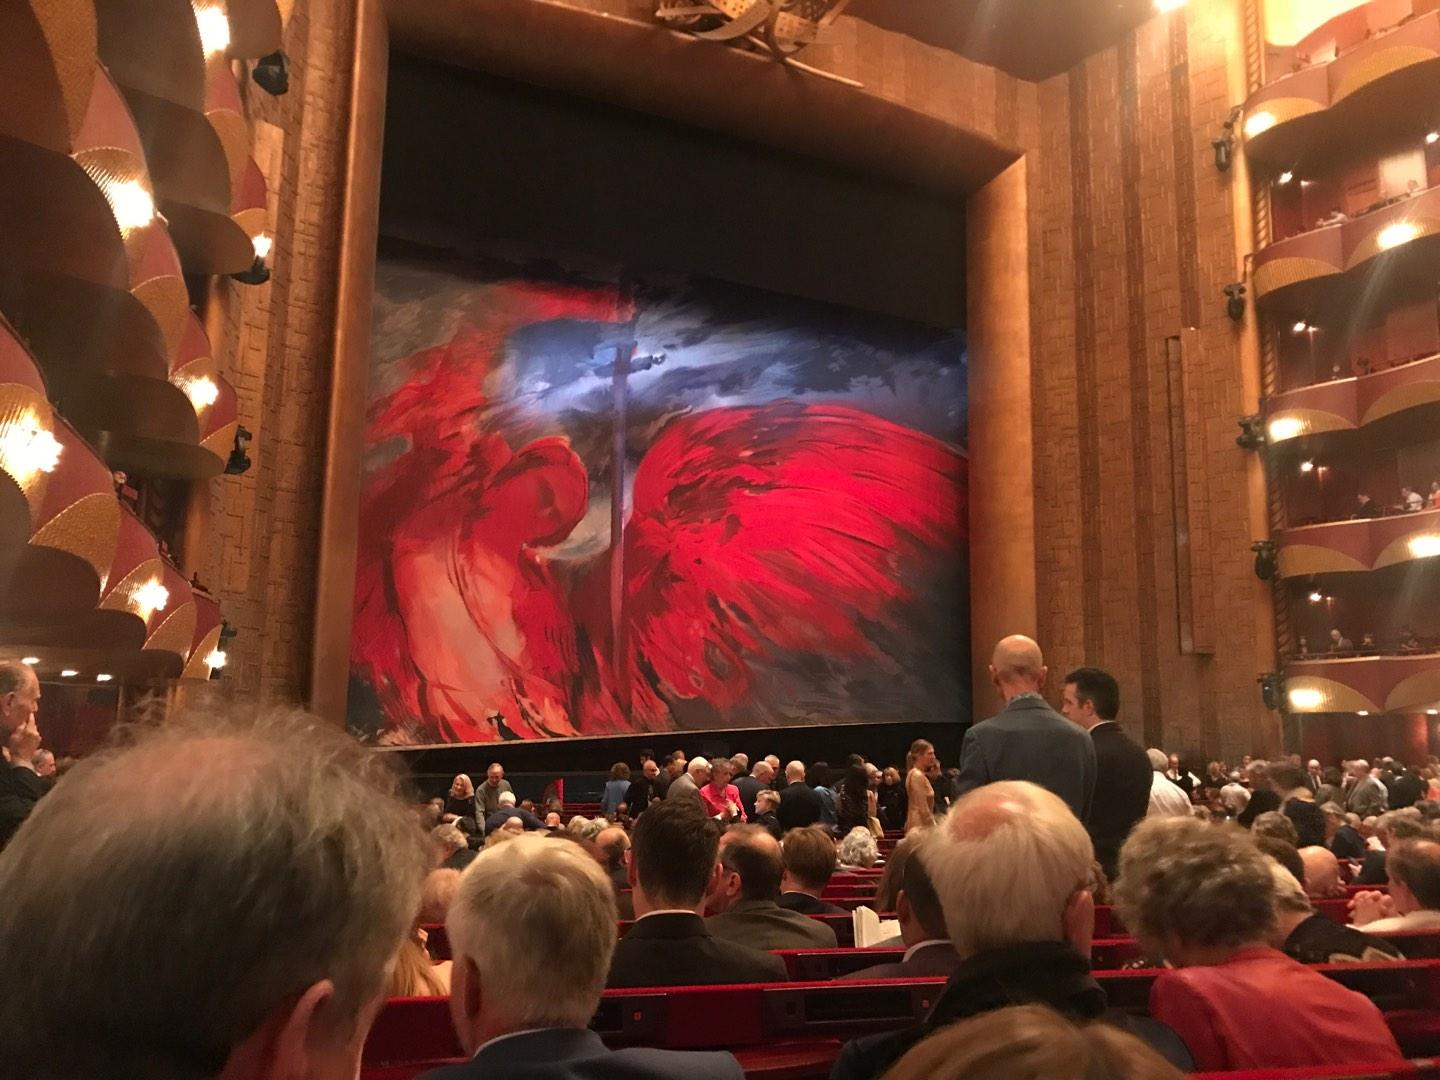 Metropolitan Opera House - Lincoln Center Section Orch Row V Seat 19